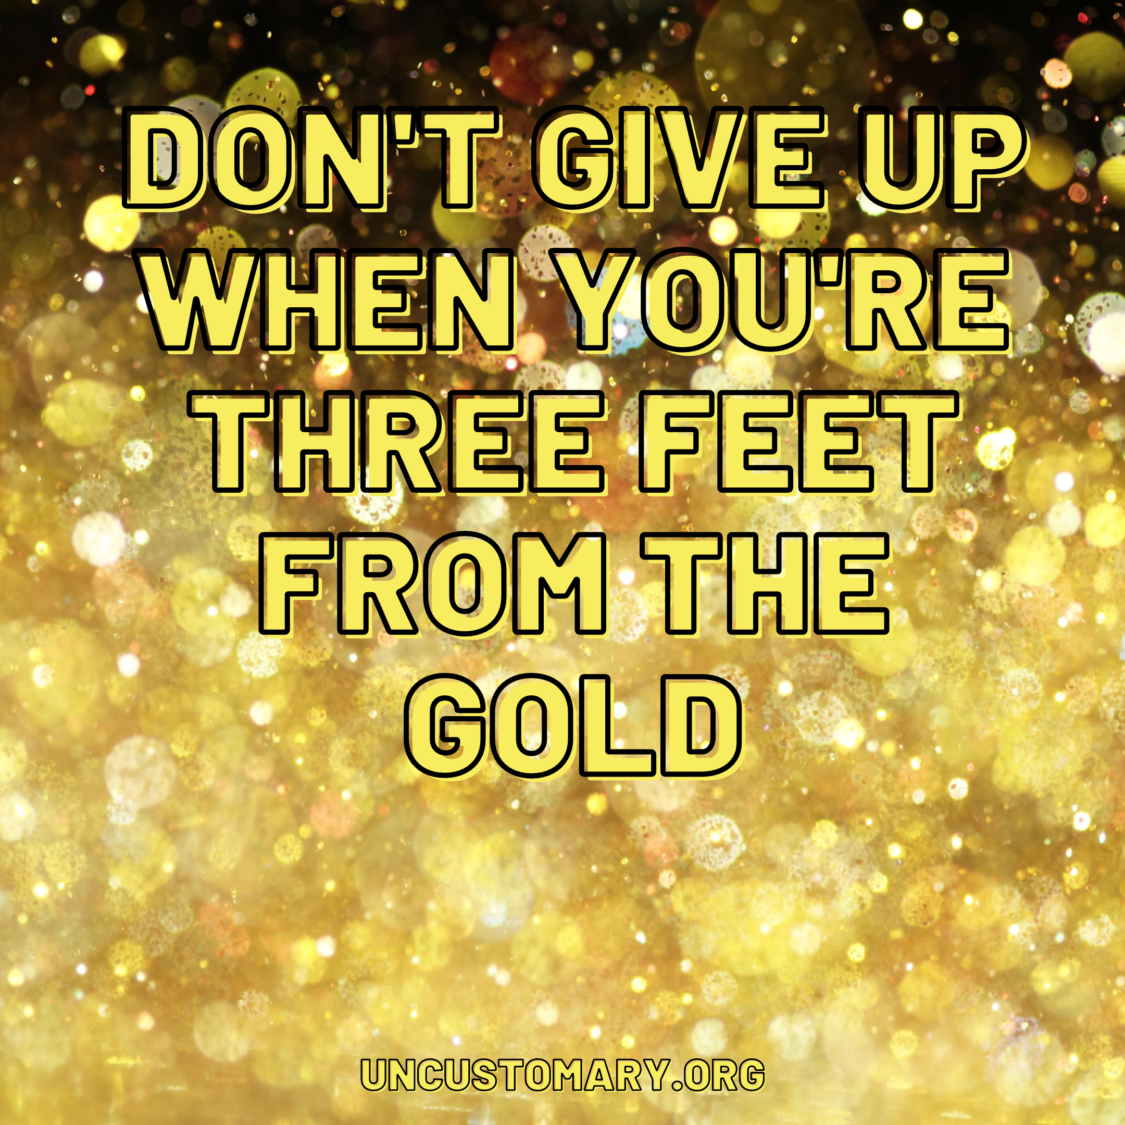 Don't Give Up When You're Three Feet From The Gold | Uncustomary